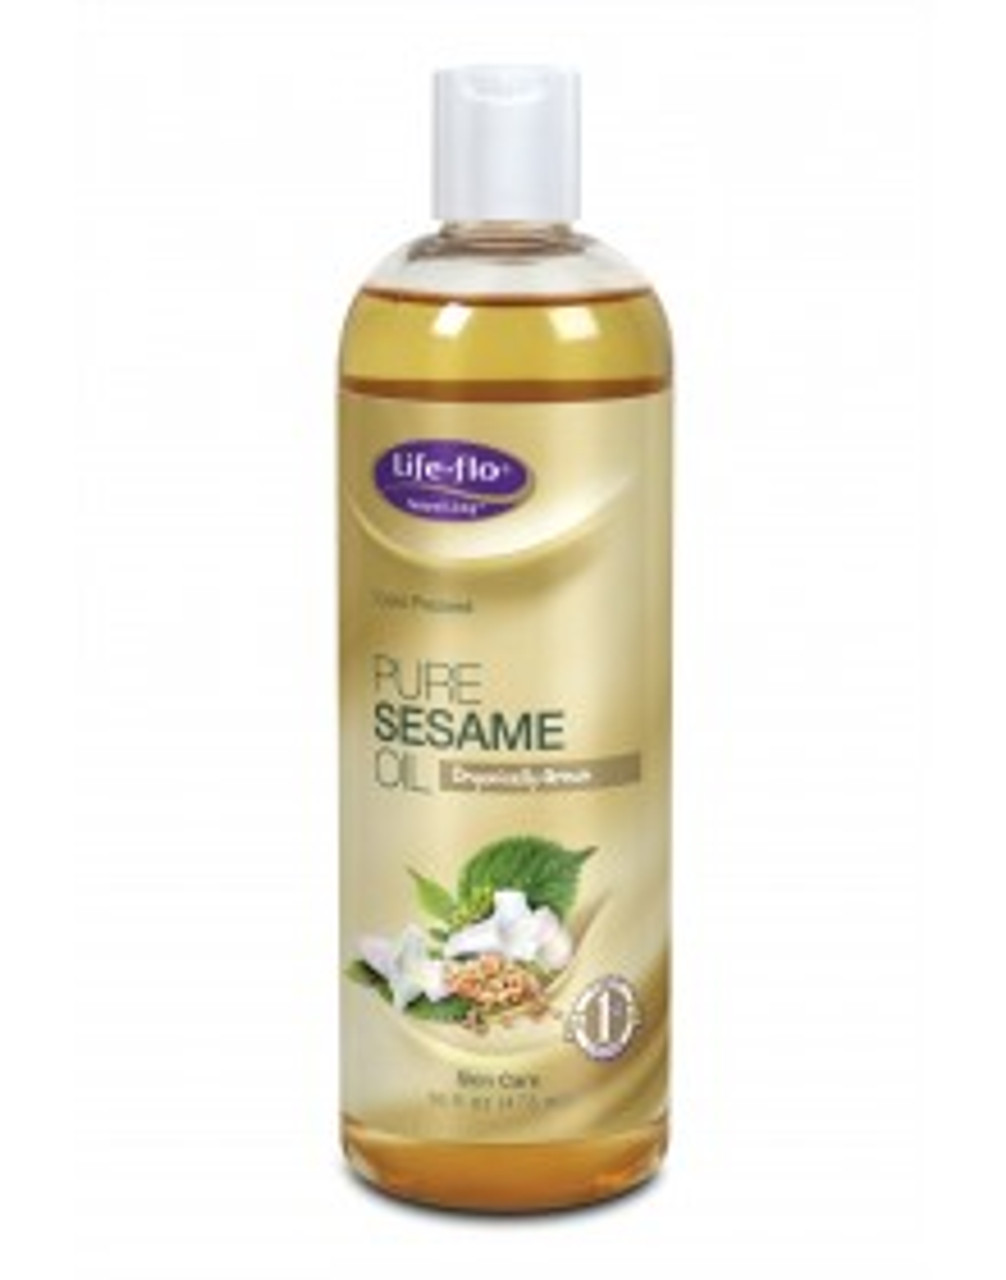 Sesame Oil Pure 16oz Life Flo